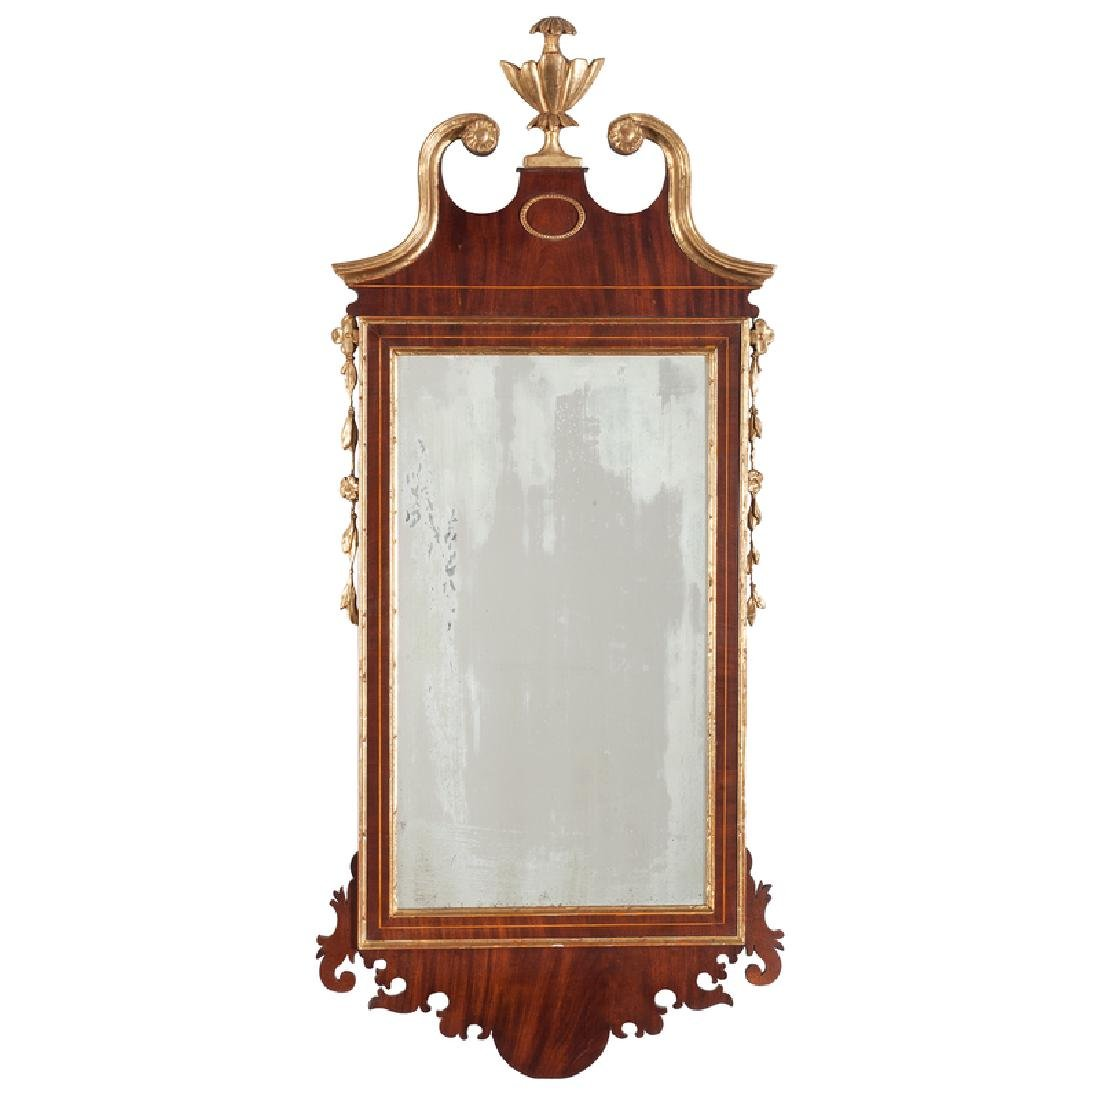 Federal Inlaid and Parcel-Gilt Mahogany Mirror